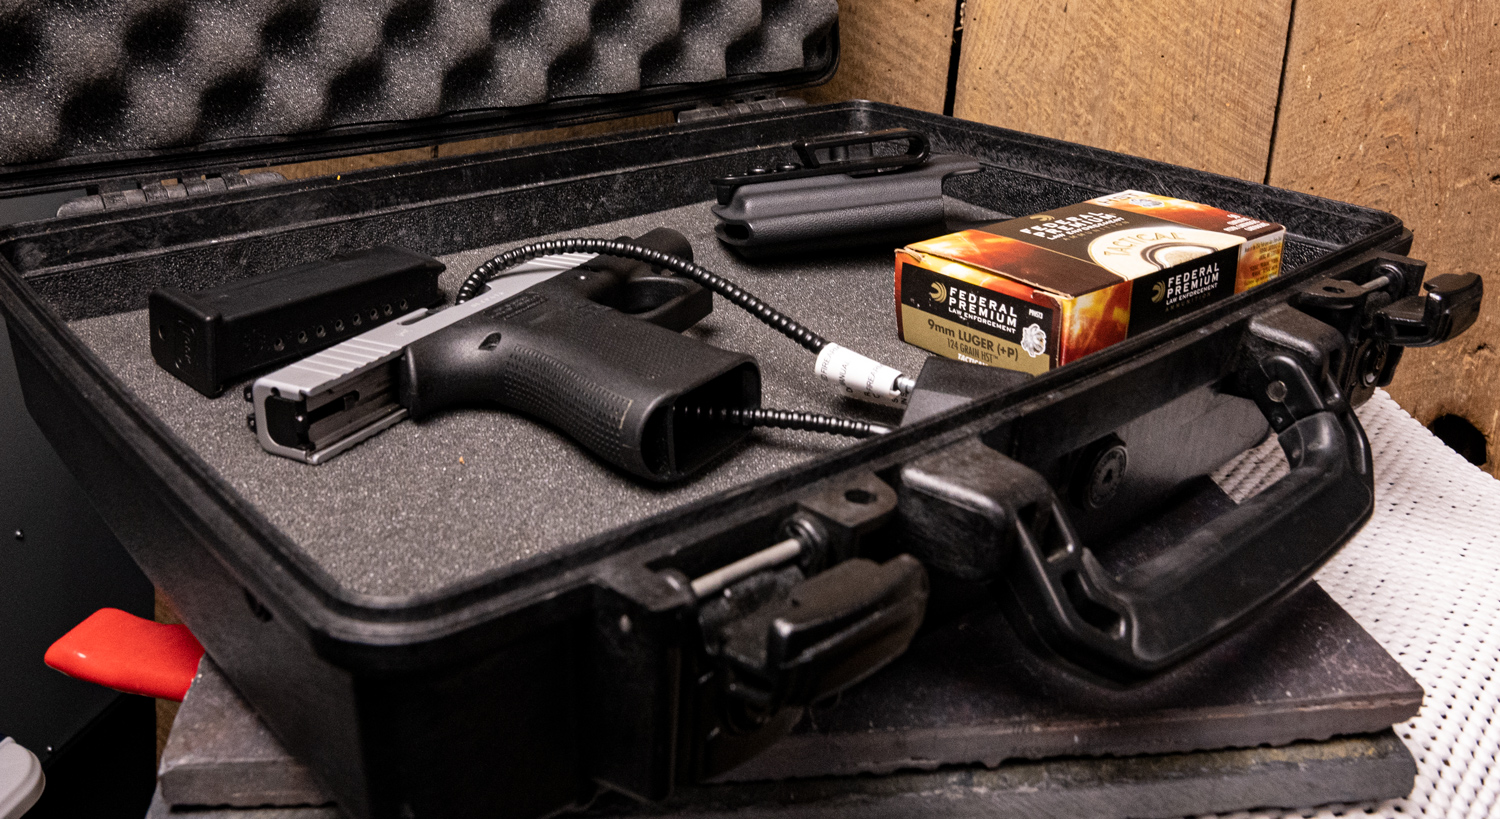 hard sided case with locked gun and ammo inside